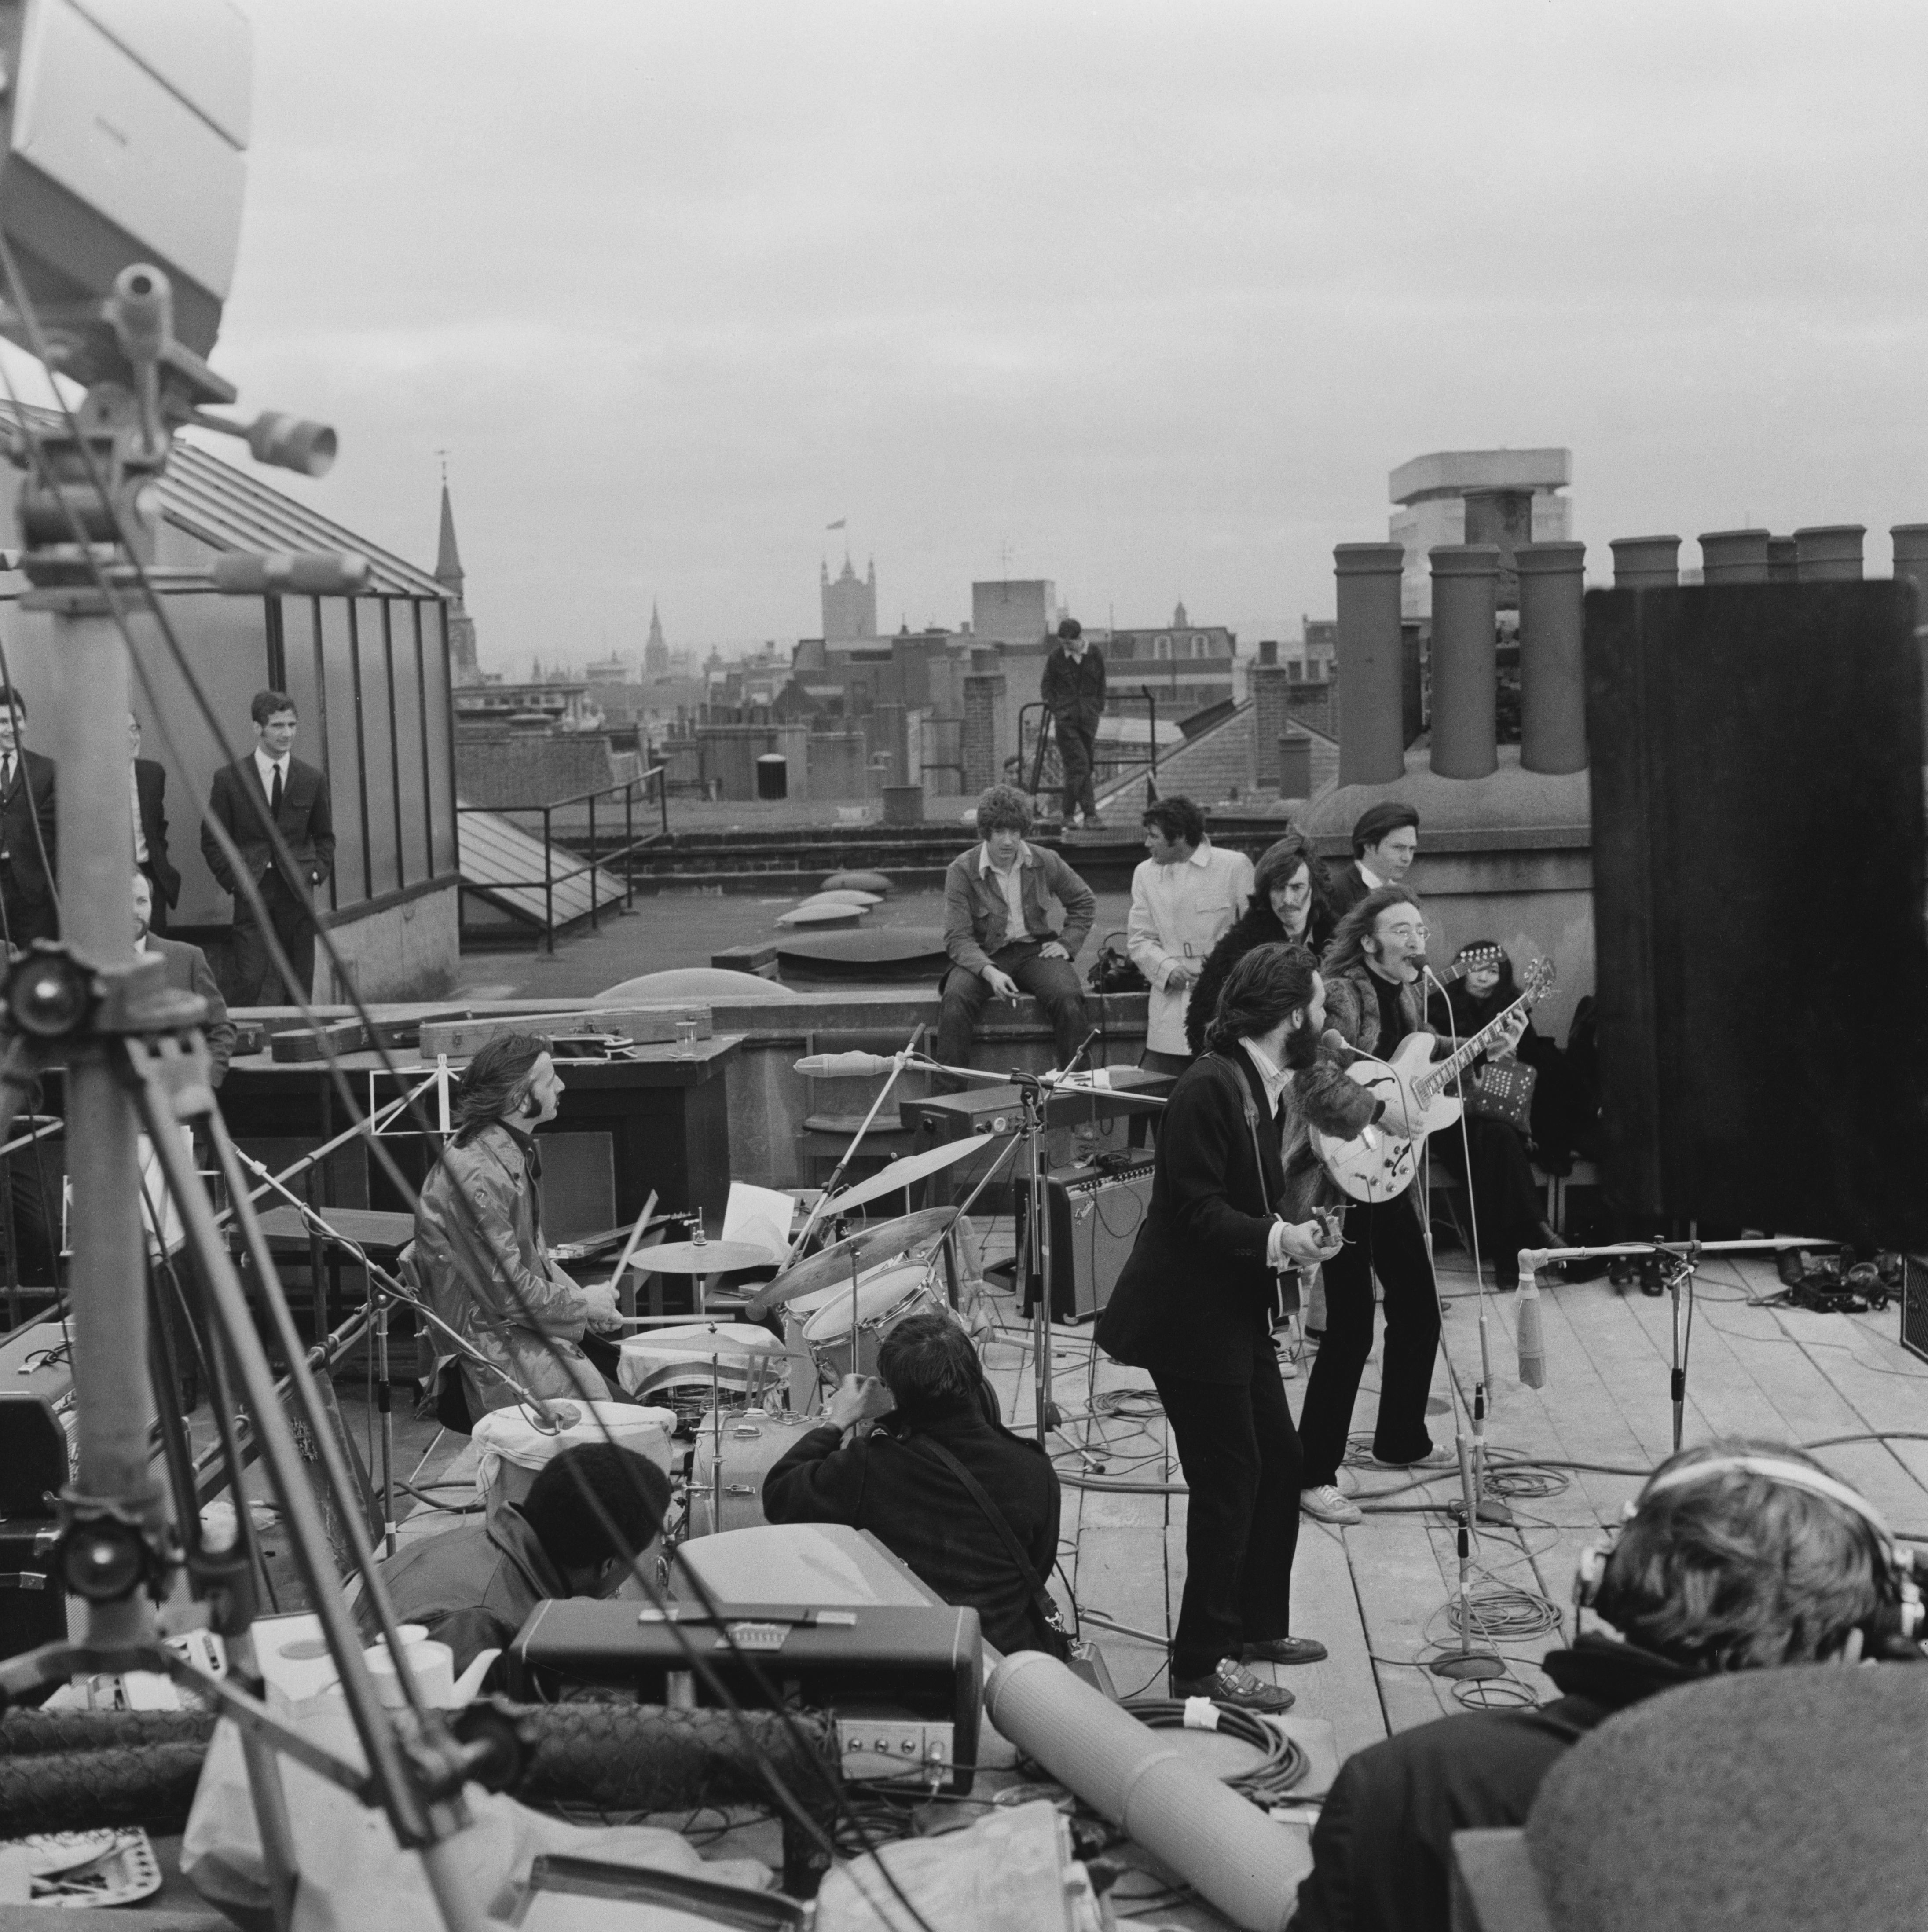 The Beatles performing their last live public concert on the rooftop of the Apple Organization building for director Michael Lindsey-Hogg's film documentary, 'Let It Be,' on Savile Row, London, Jan. 30, 1969.